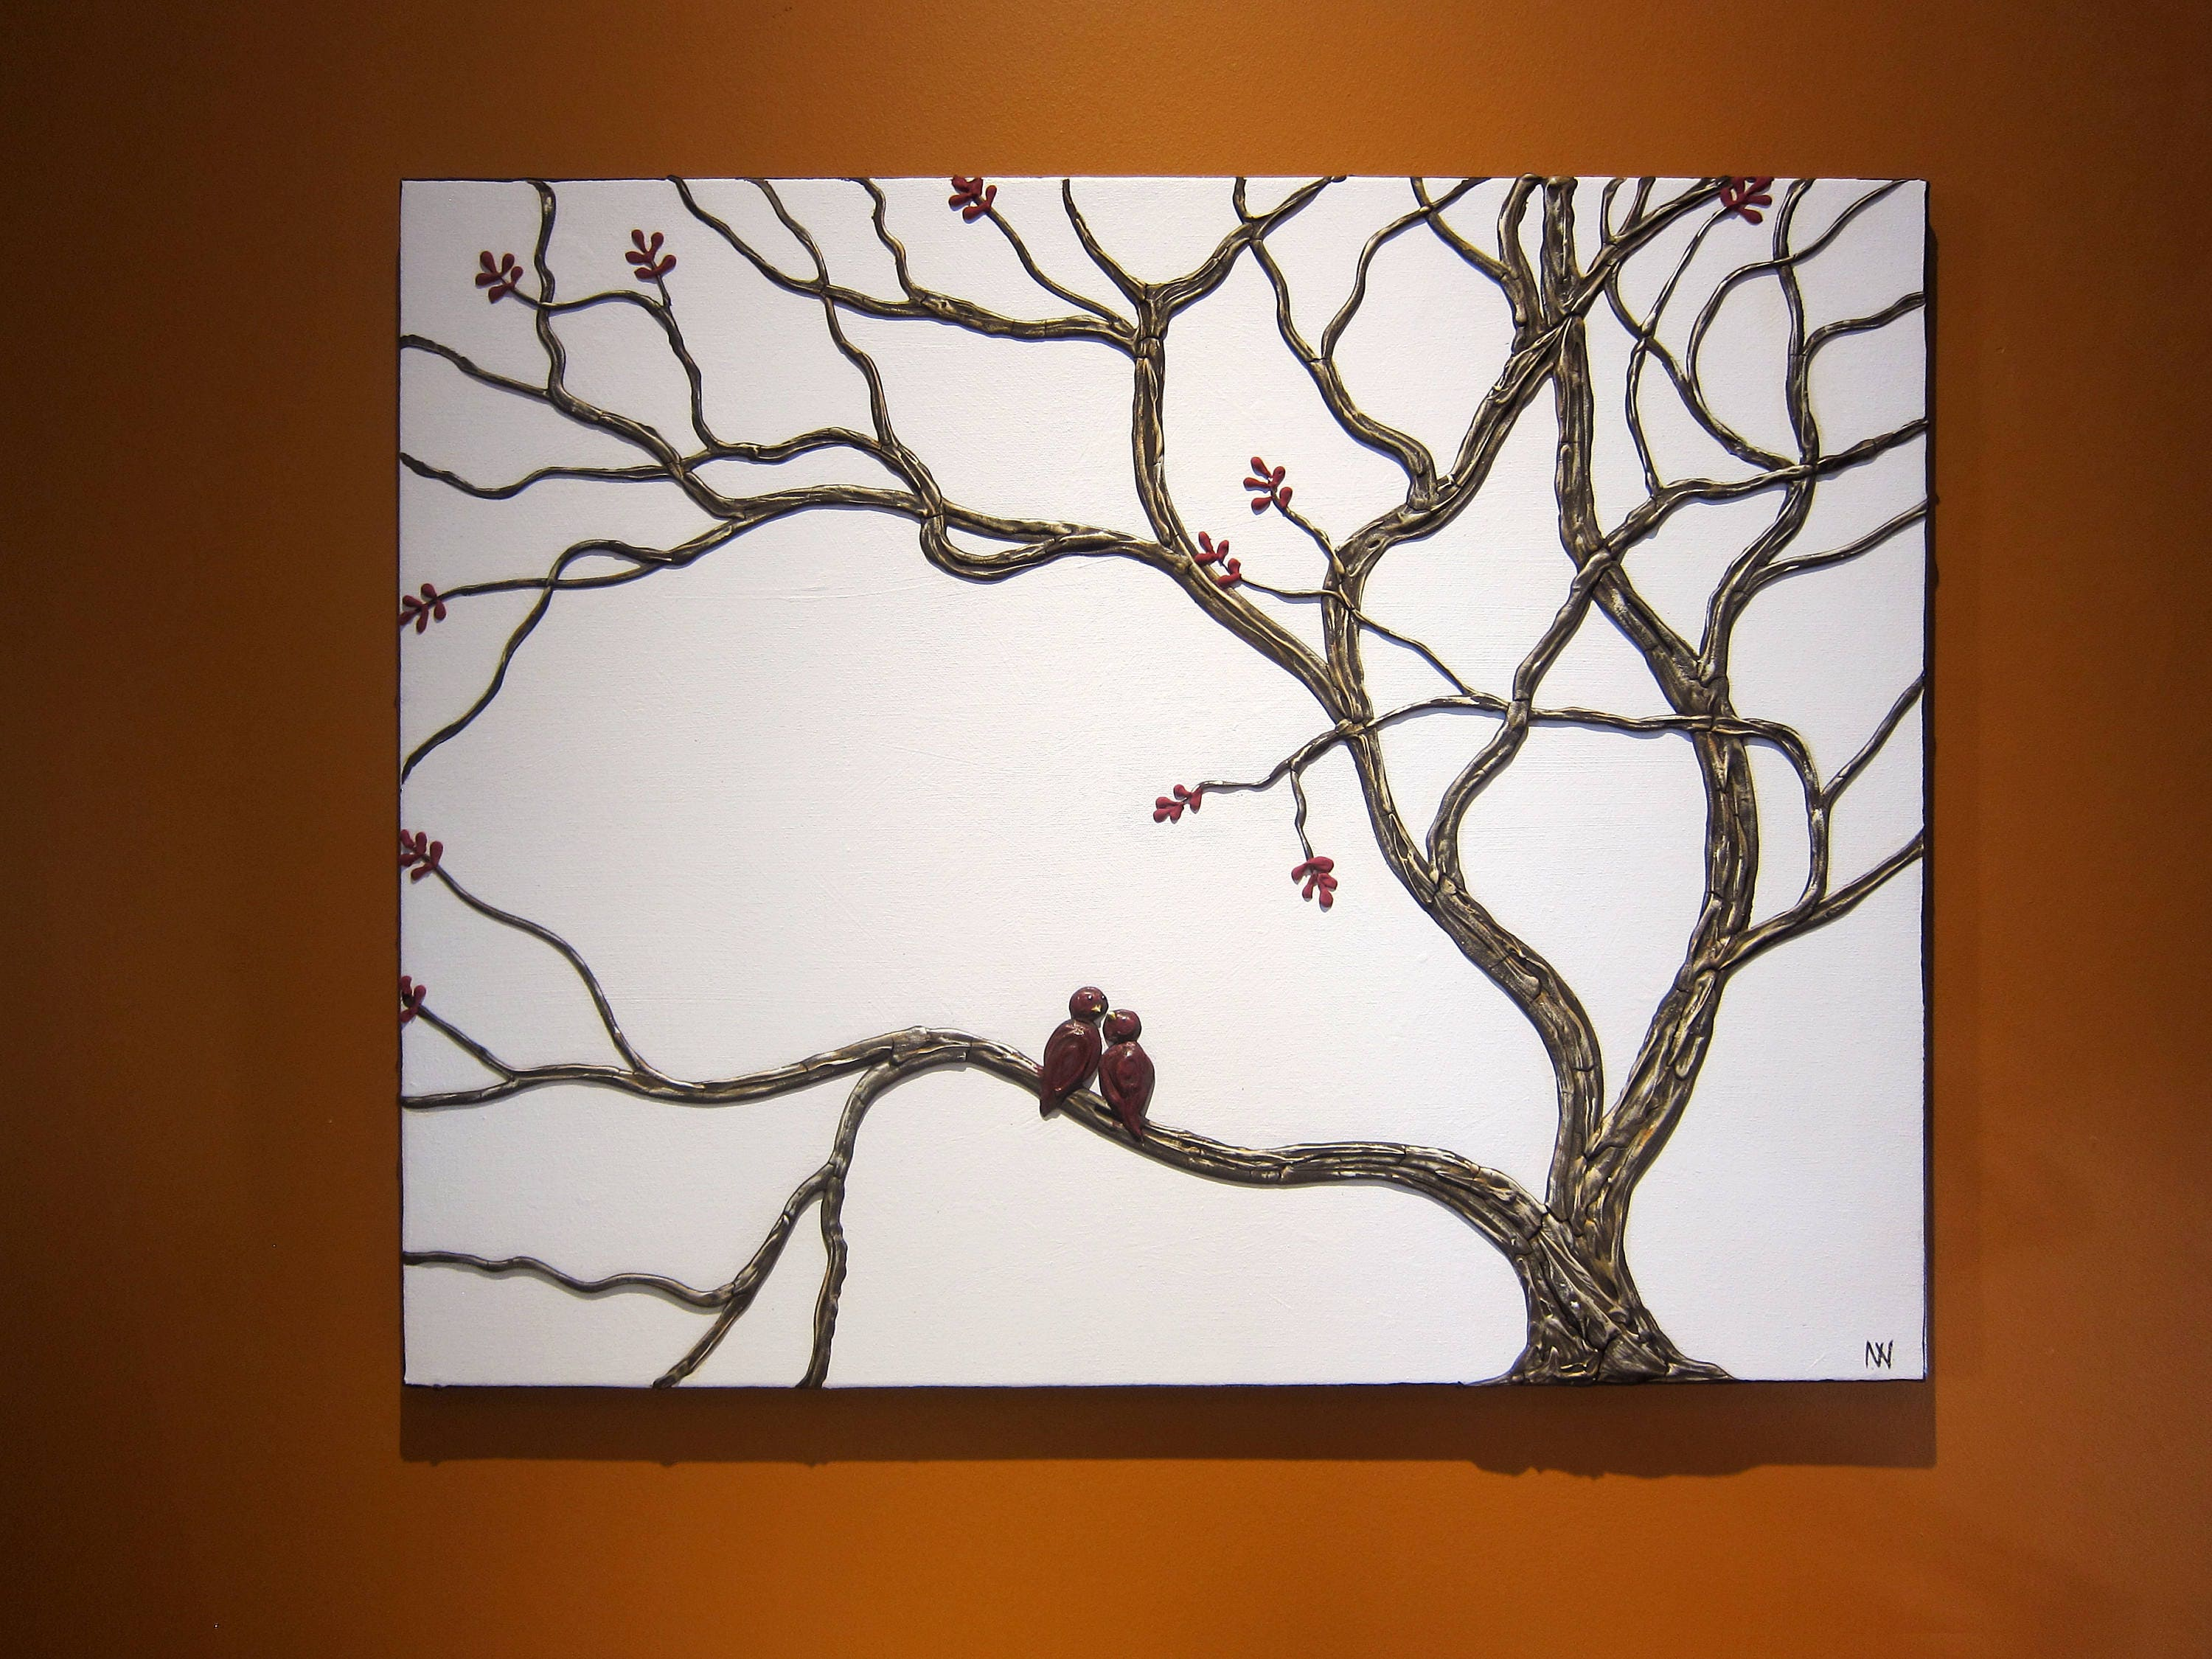 Love Bird Painting Tree Art Impasto Textured Branches Sculpted Wall Art Original Home Decor Unique Oneofakind By Nathalie Van 30x24